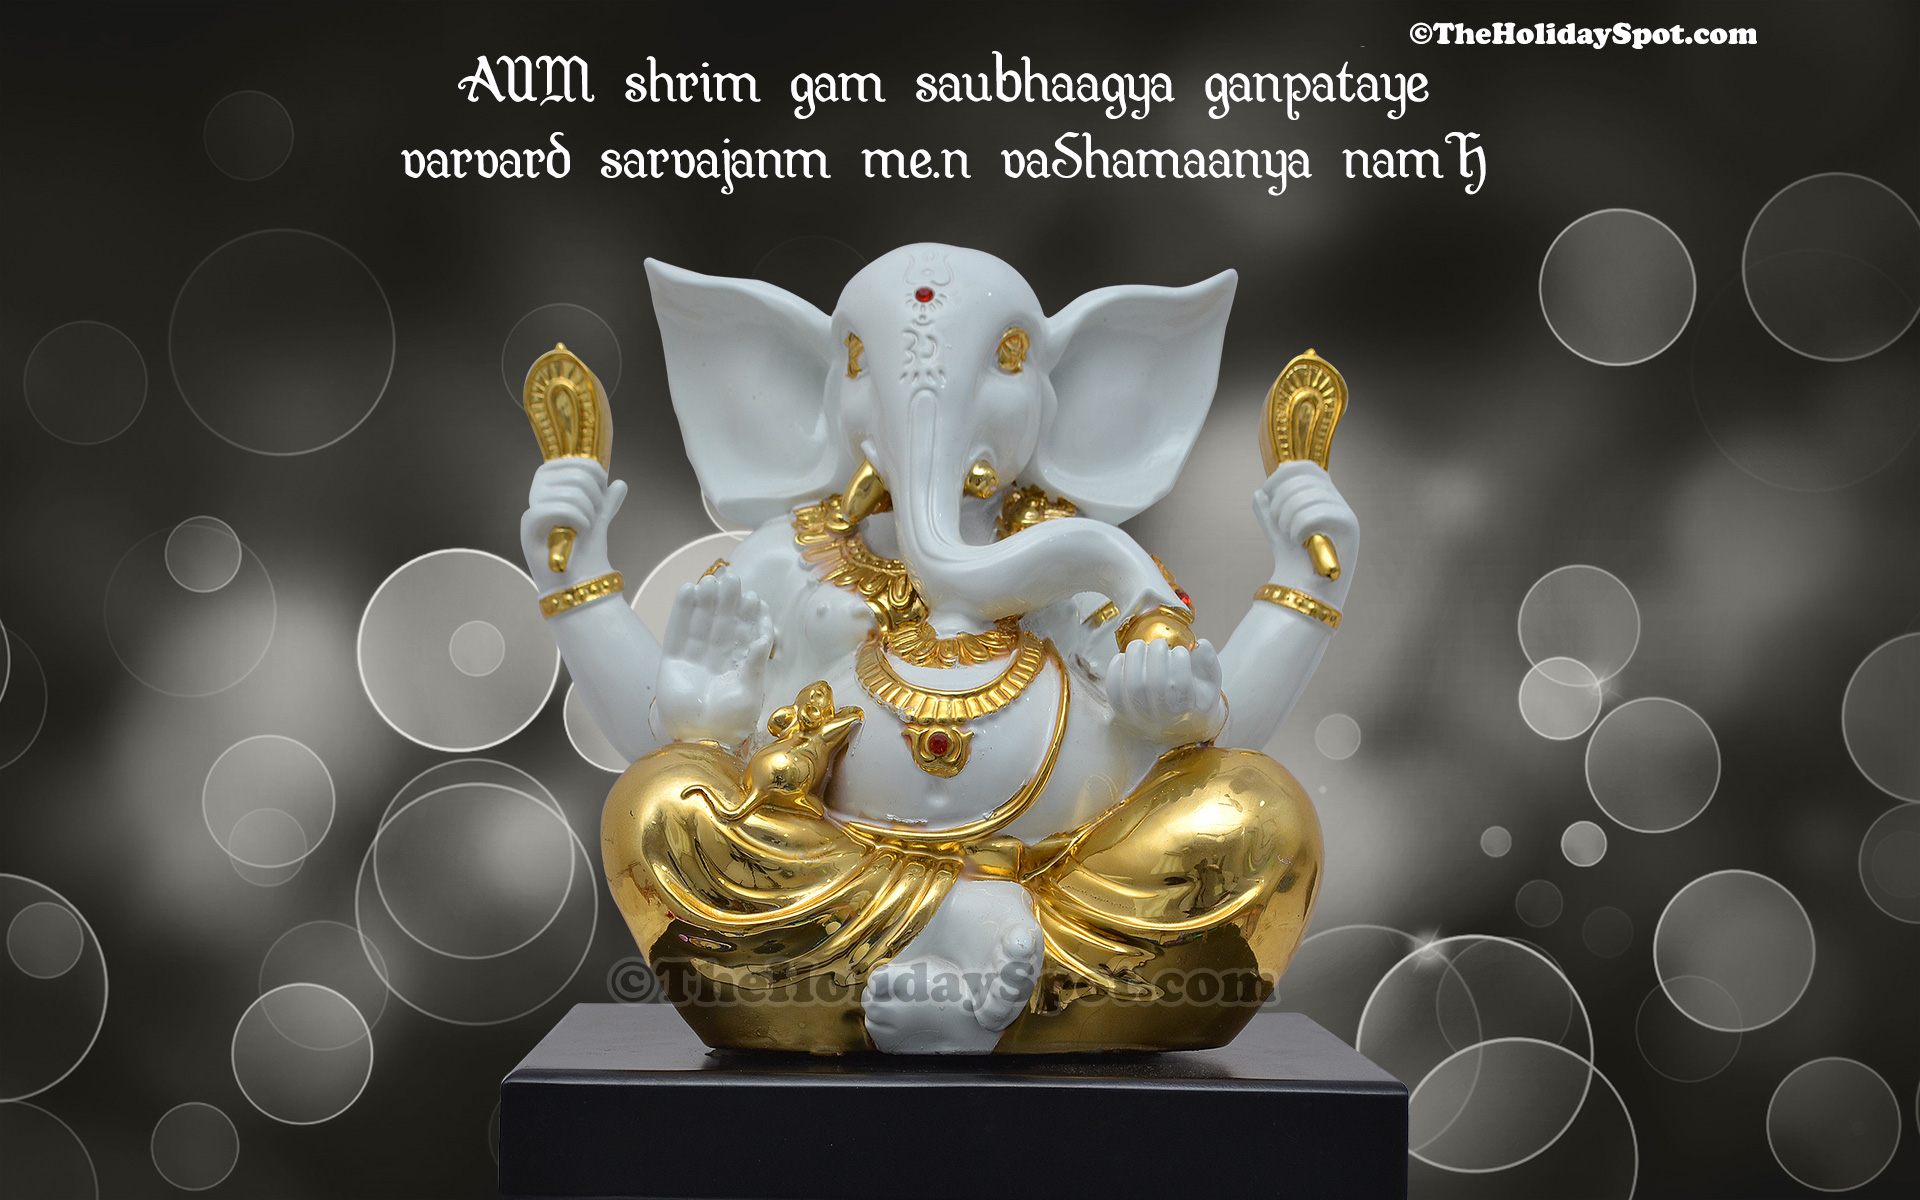 ganesh chaturthi wallpaper with mantra of lord ganesha